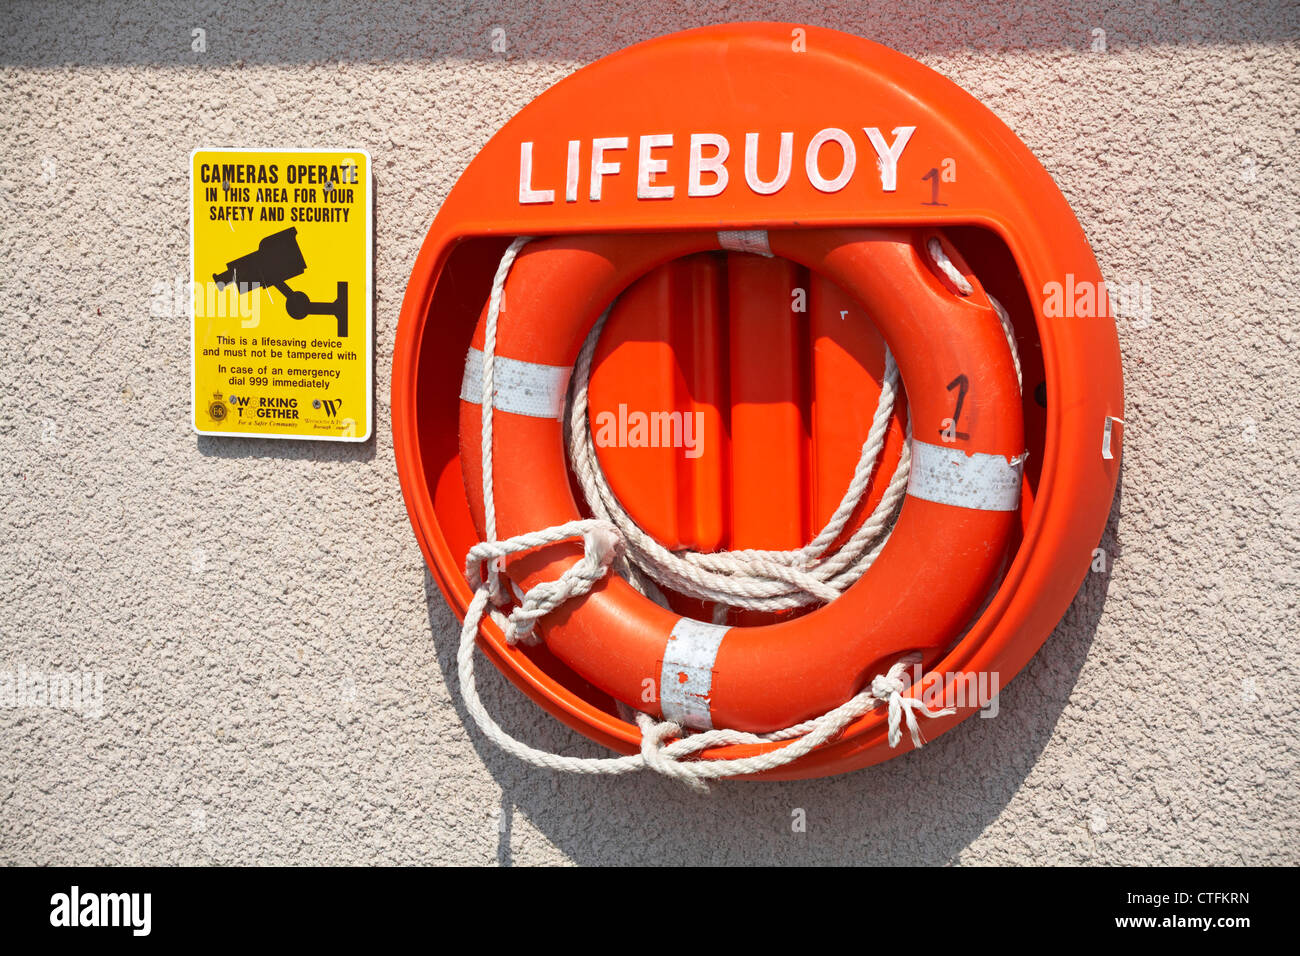 Lifebuoy ring with notice alongside advising cameras operate in the area at Weymouth in May - Stock Image